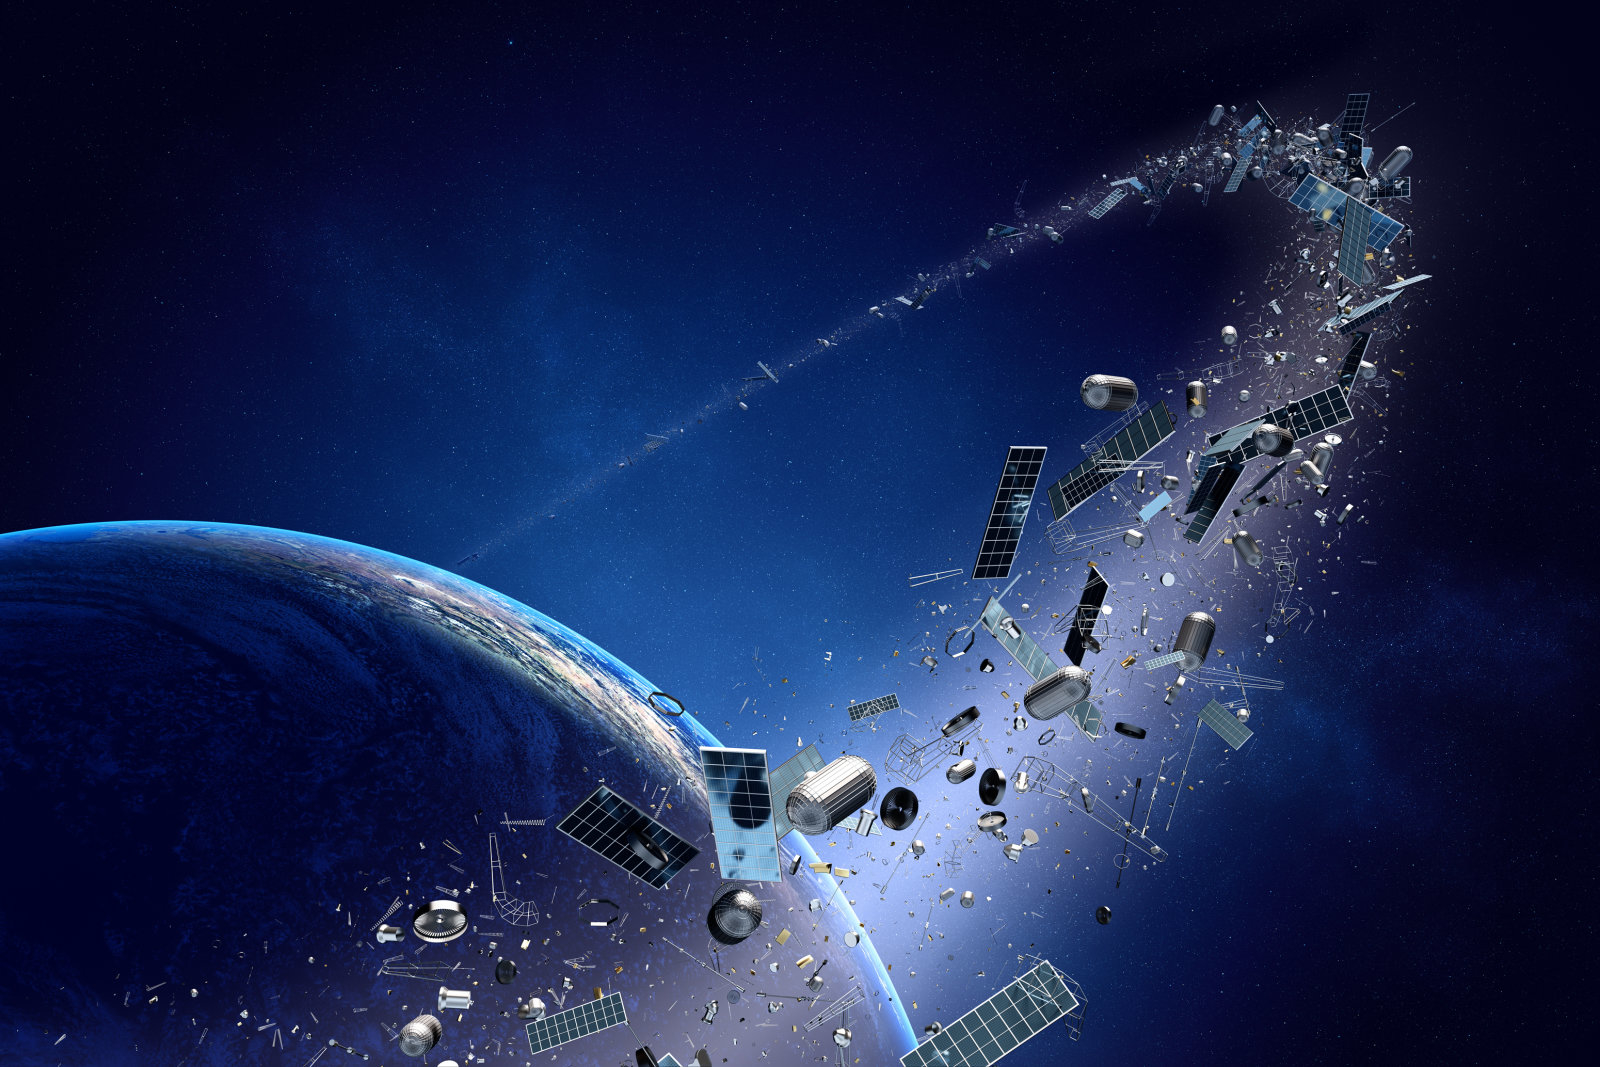 Space junk orbiting around earth - Conceptual of pollution around our planet (Texture map for 3d furnished by NASA -  http://visibleearth.nasa.gov/)